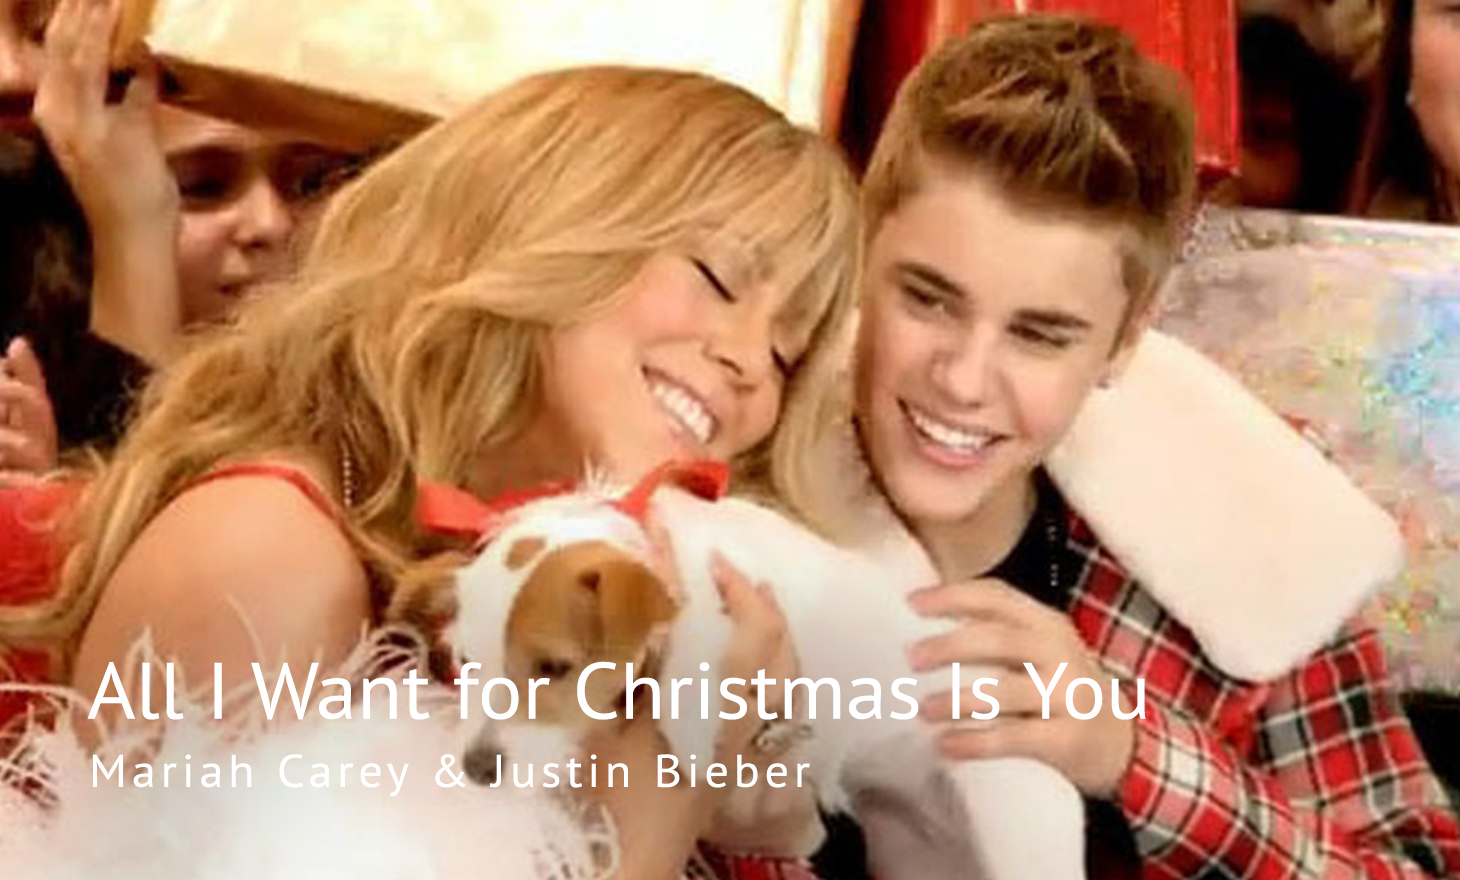 Mariah Carey & Justin Bieber : All I Want for Christmas Is You